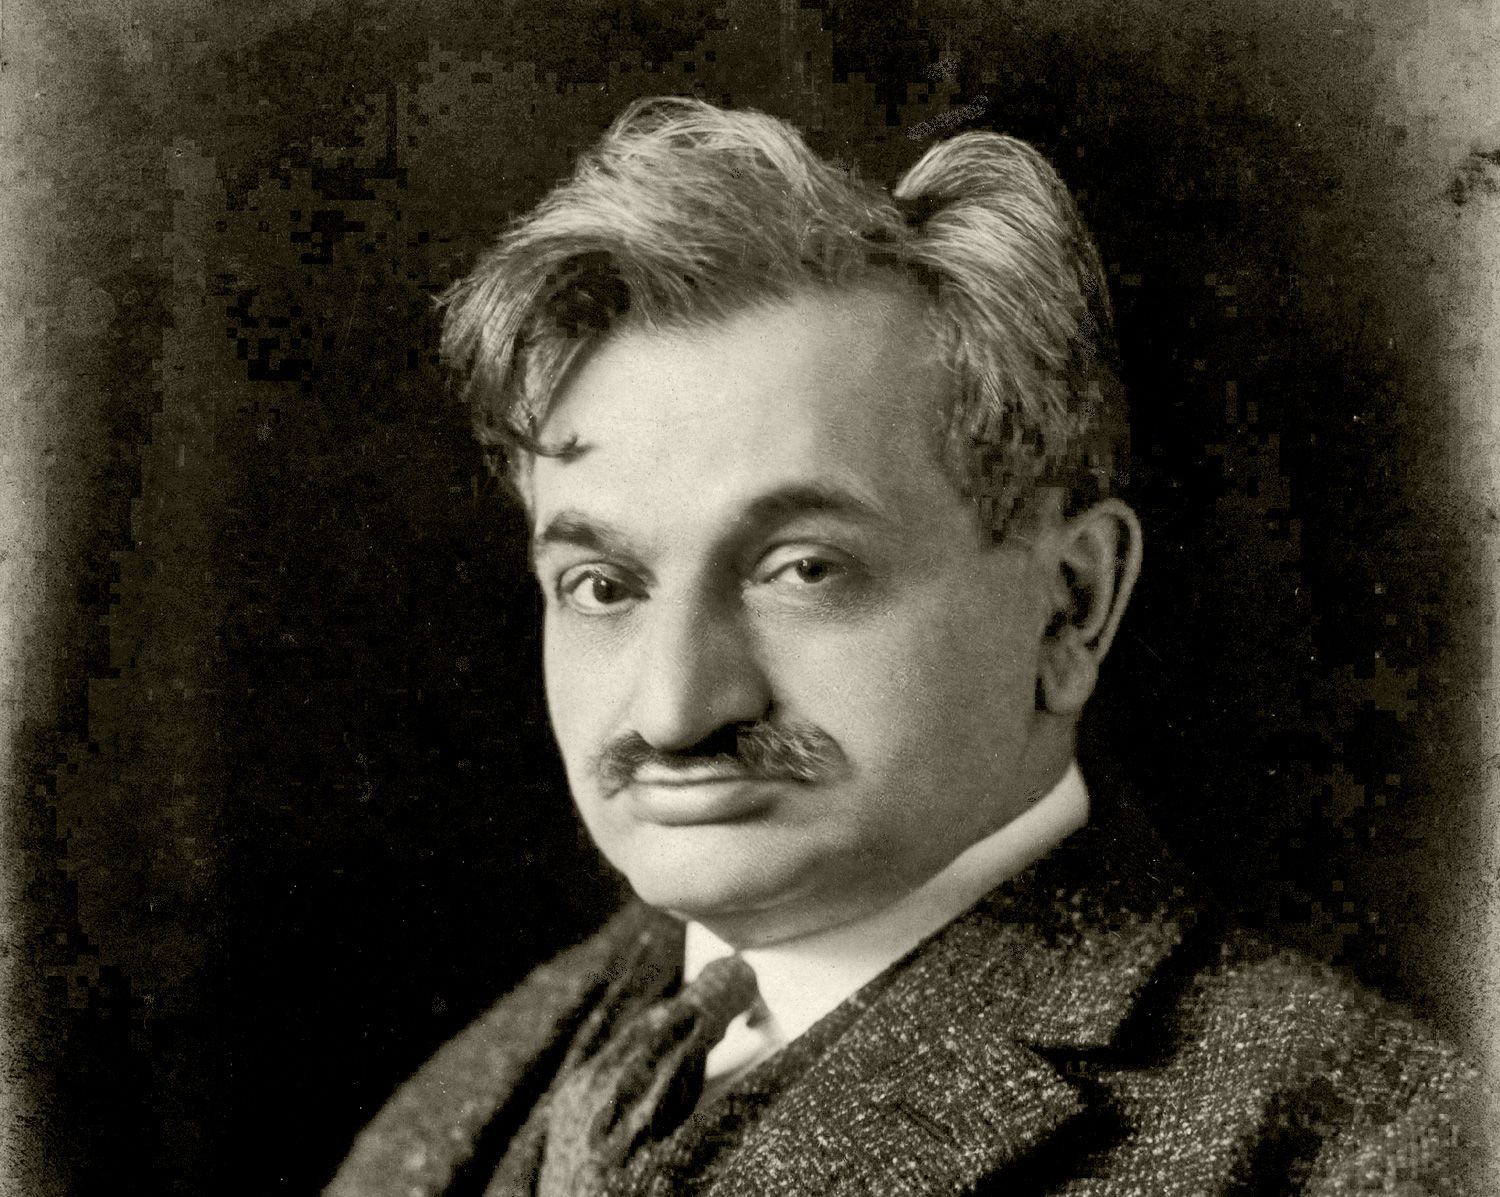 An image of Emanuel Lasker